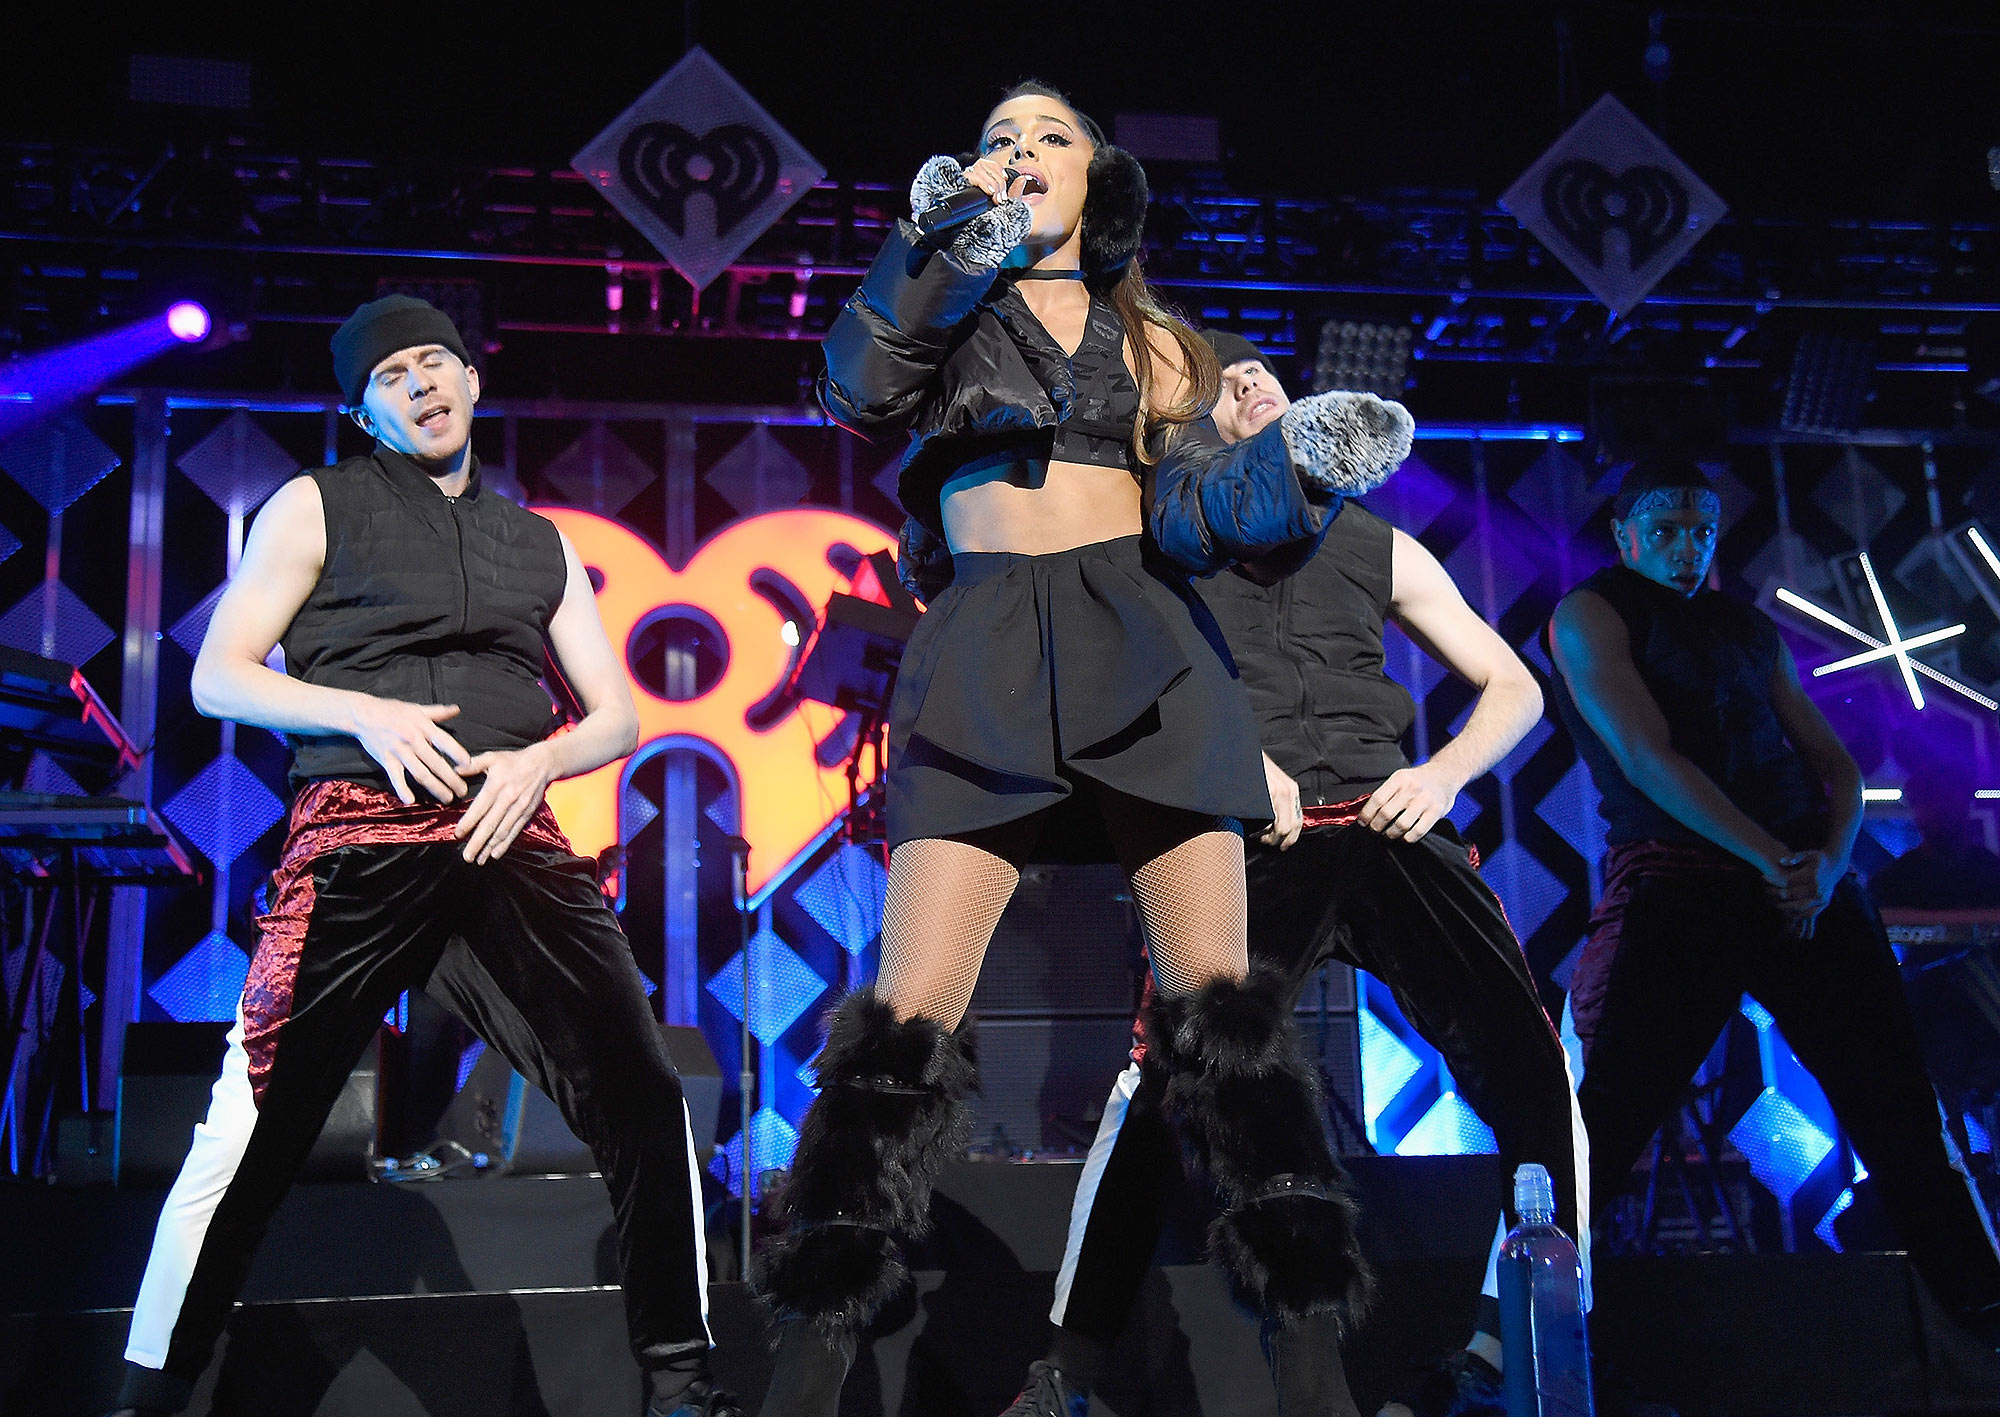 NEW YORK, NY - DECEMBER 09:  Ariana Grande performs onstage during Z100's Jingle Ball 2016 at Madison Square Garden on December 9, 2016 in New York, New York.  (Photo by Kevin Mazur/Getty Images for iHeart)